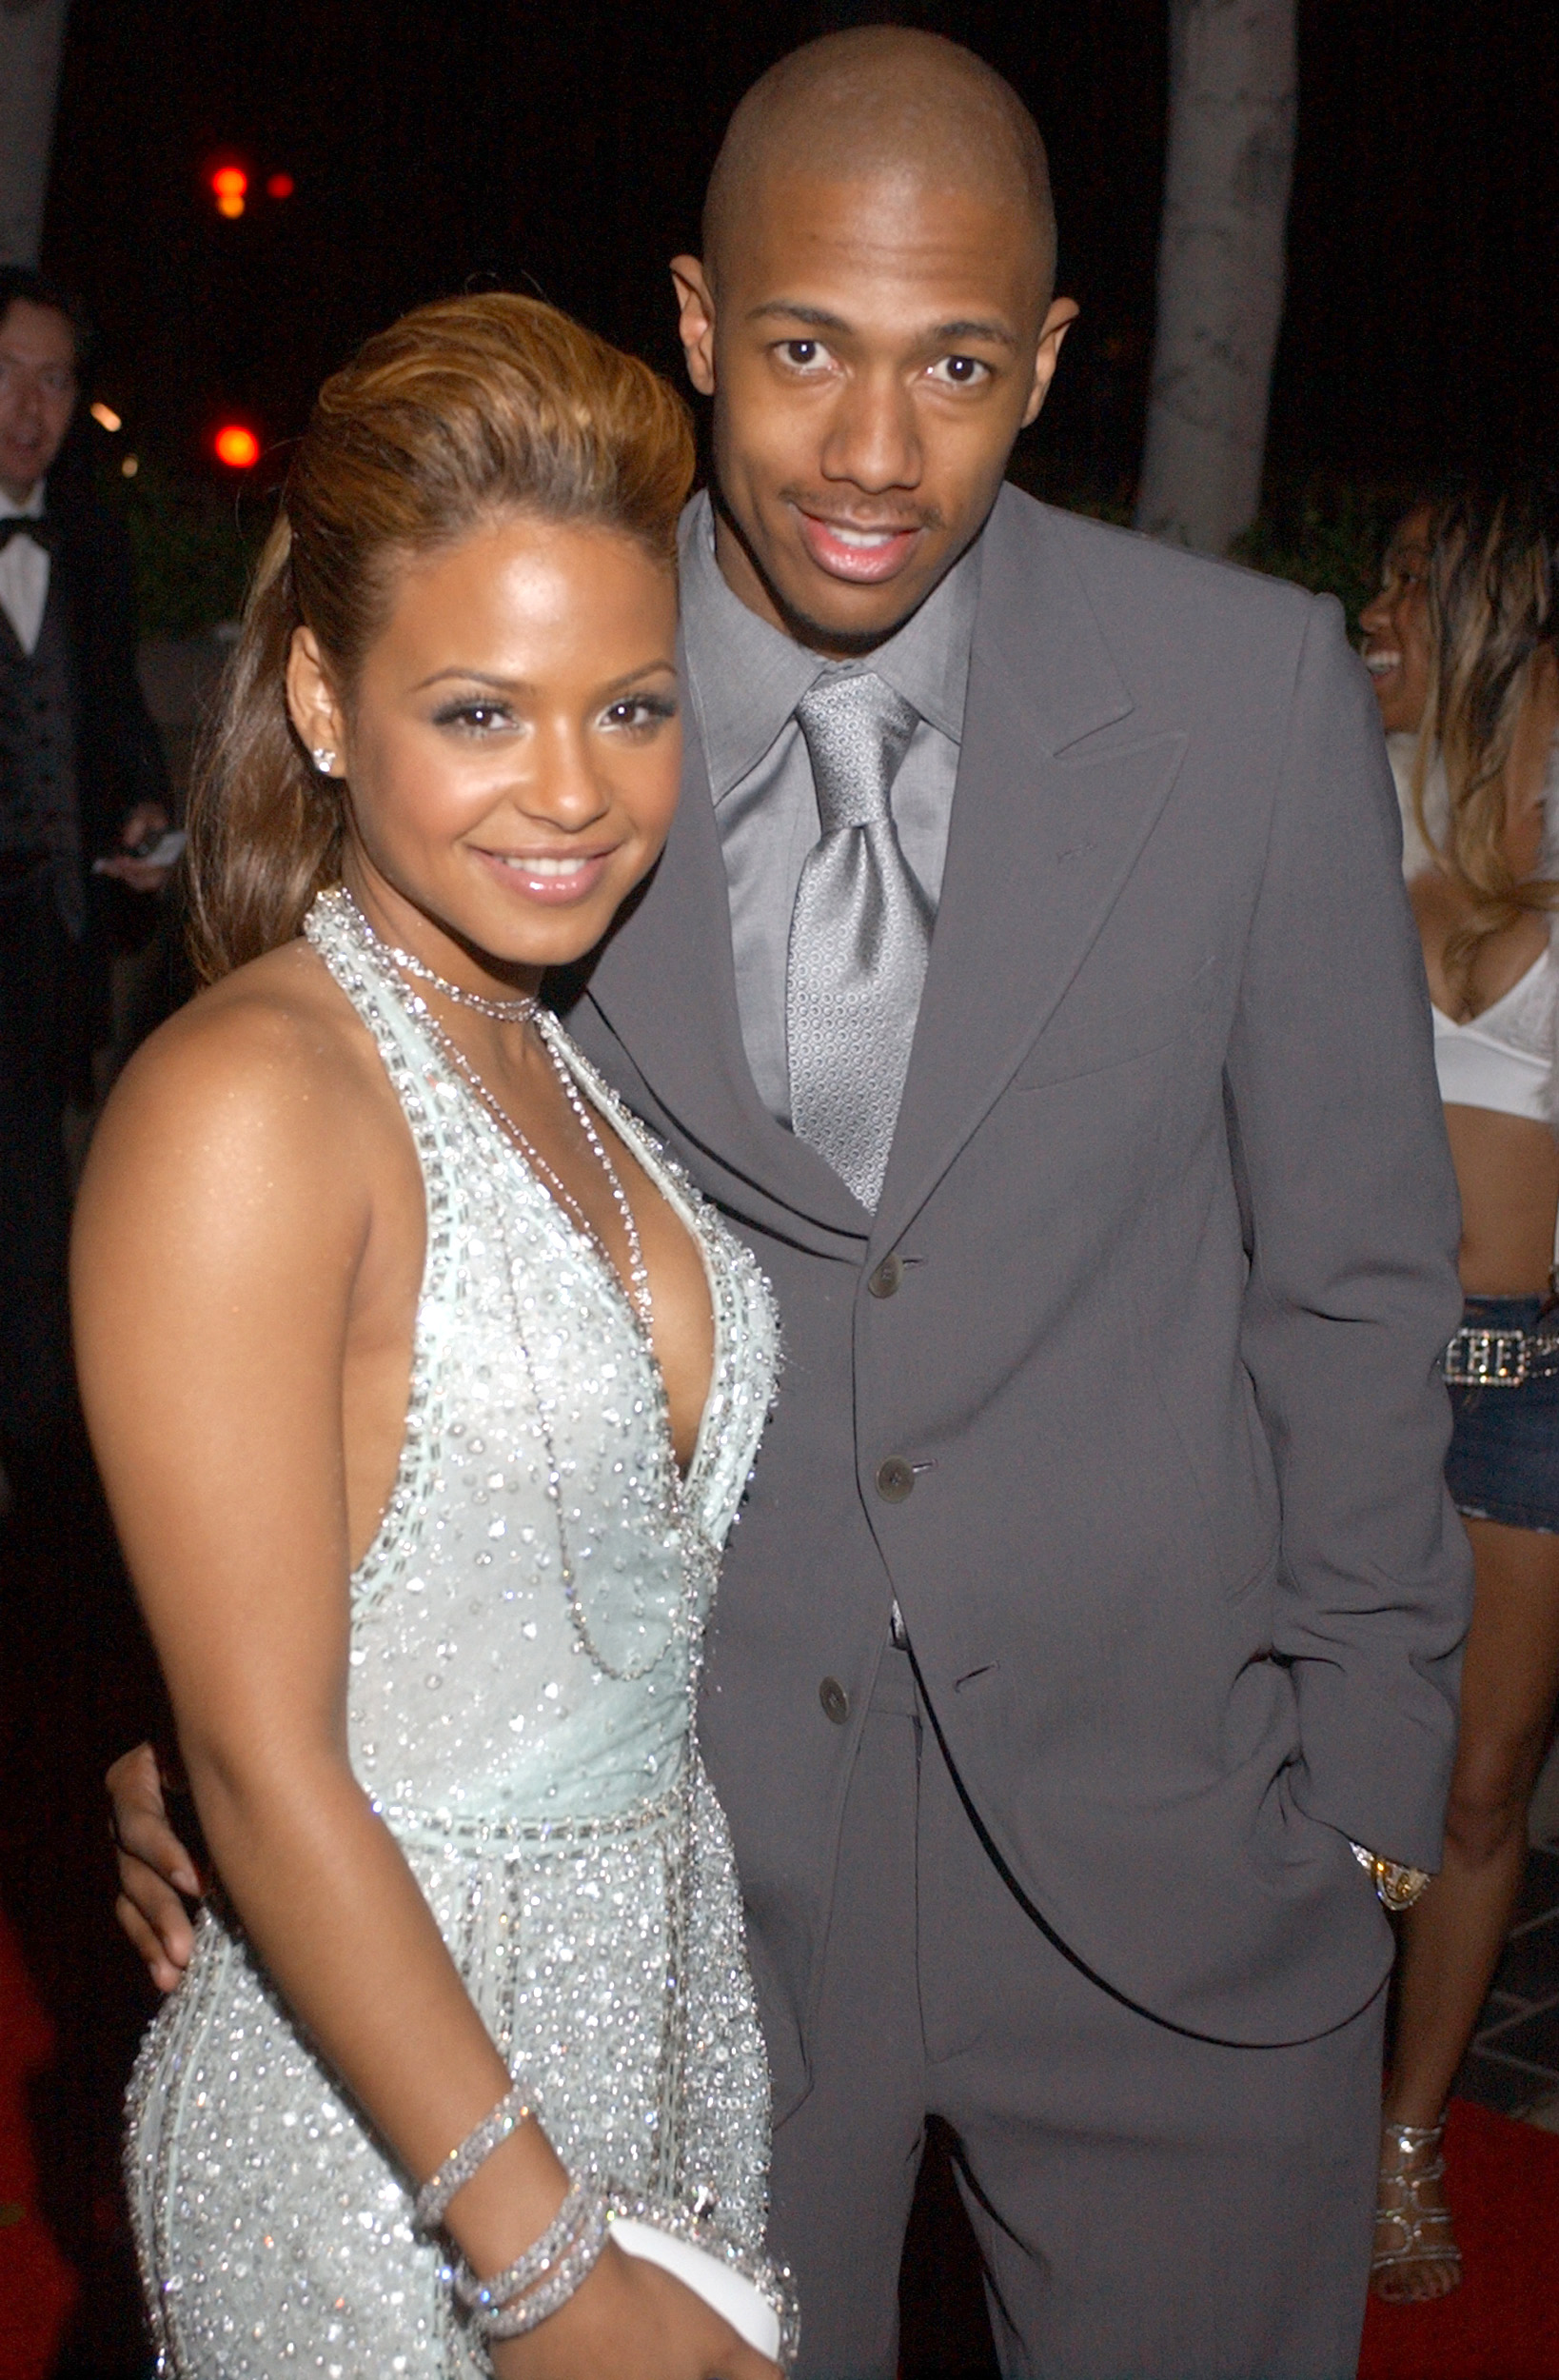 Christina Milian after Divorce with Husband The-Dream ...